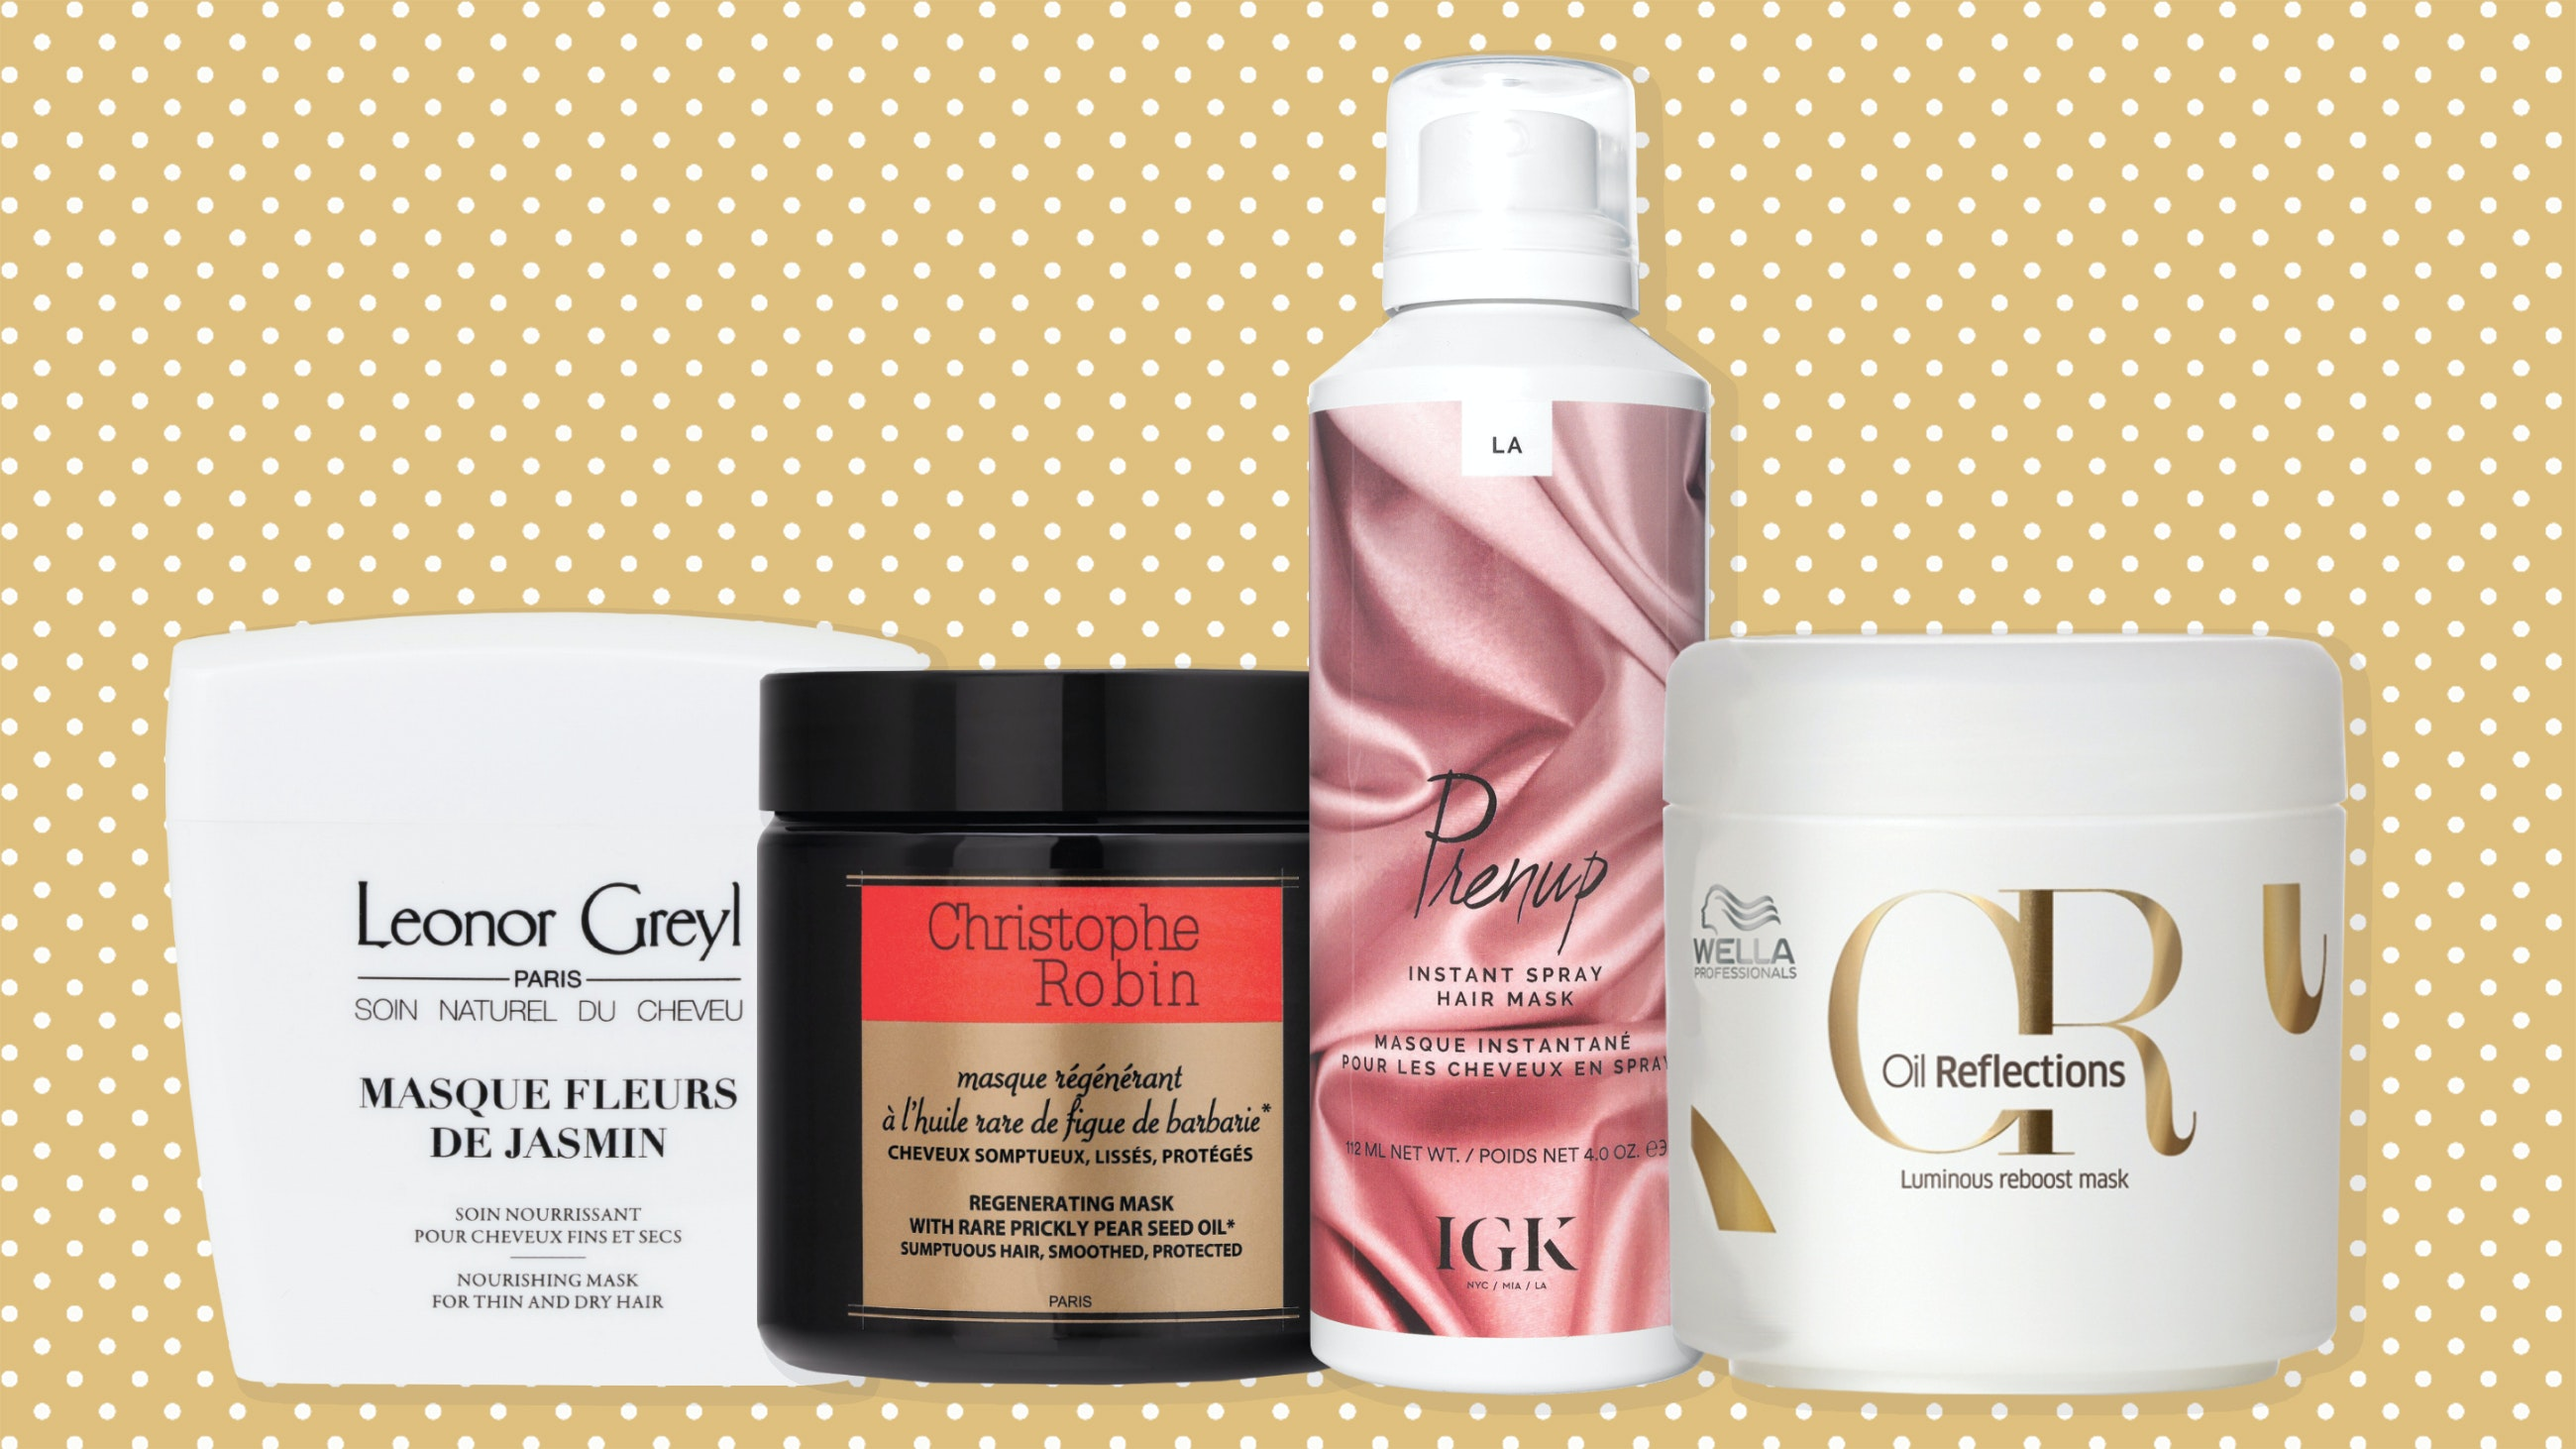 Nurse Your Hair Back to Health With These Editor-Approved Deep Conditioning Masks